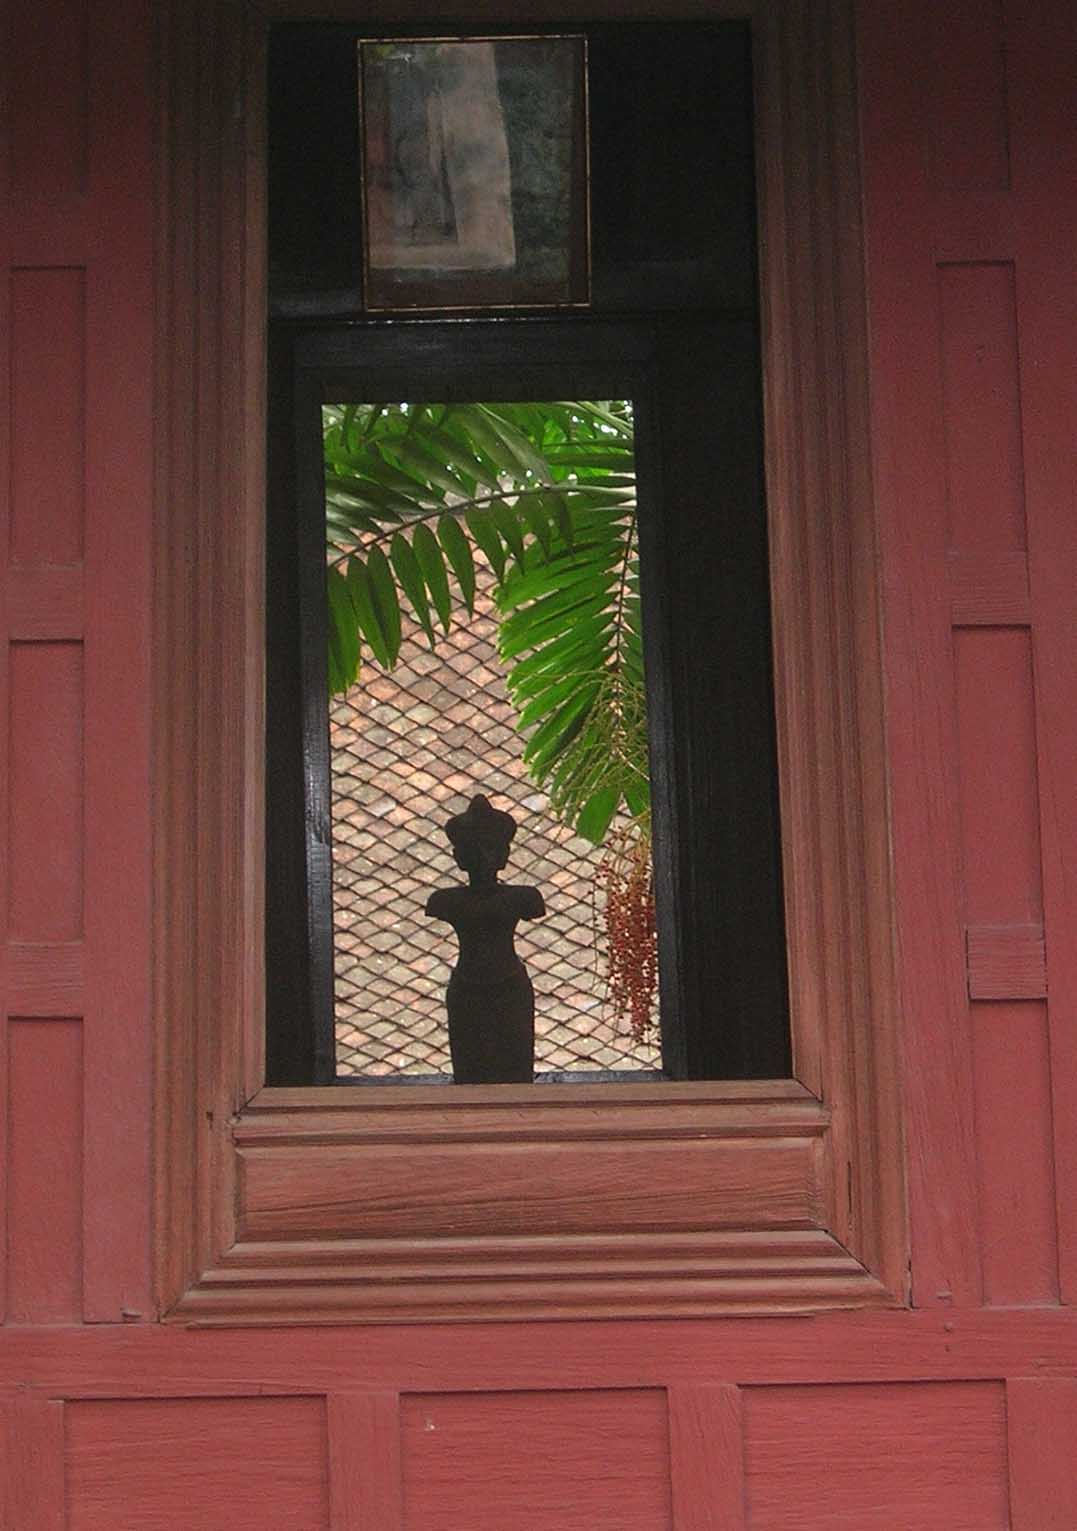 An antique Buddha image framed by a 100-year-old window at Jim Thompson's house.